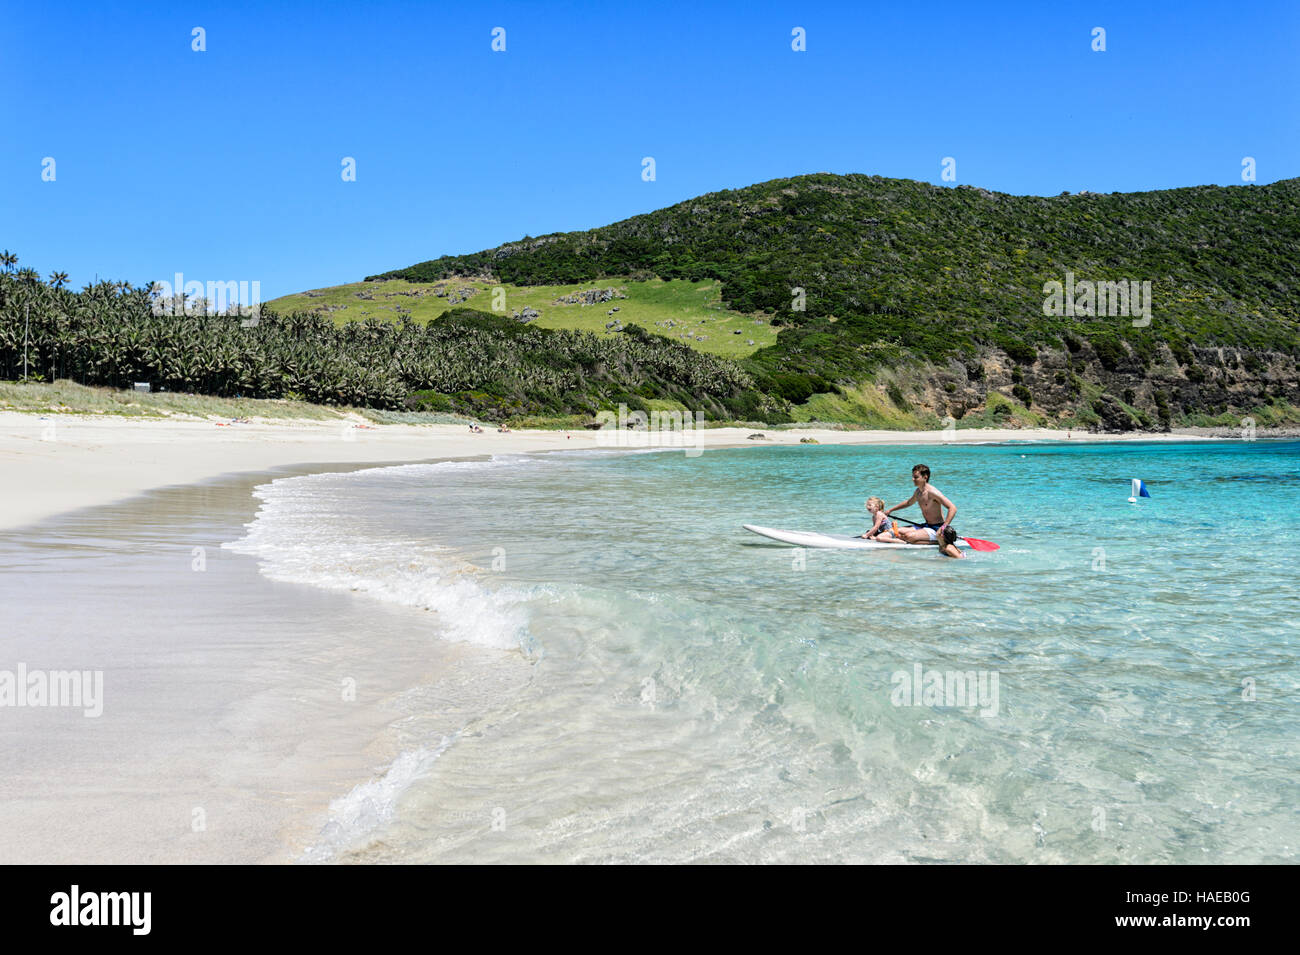 Young Boy and two Girls paddleboarding at Ned's Beach, Lord Howe Island, New South Wales, NSW, Australia - Stock Image